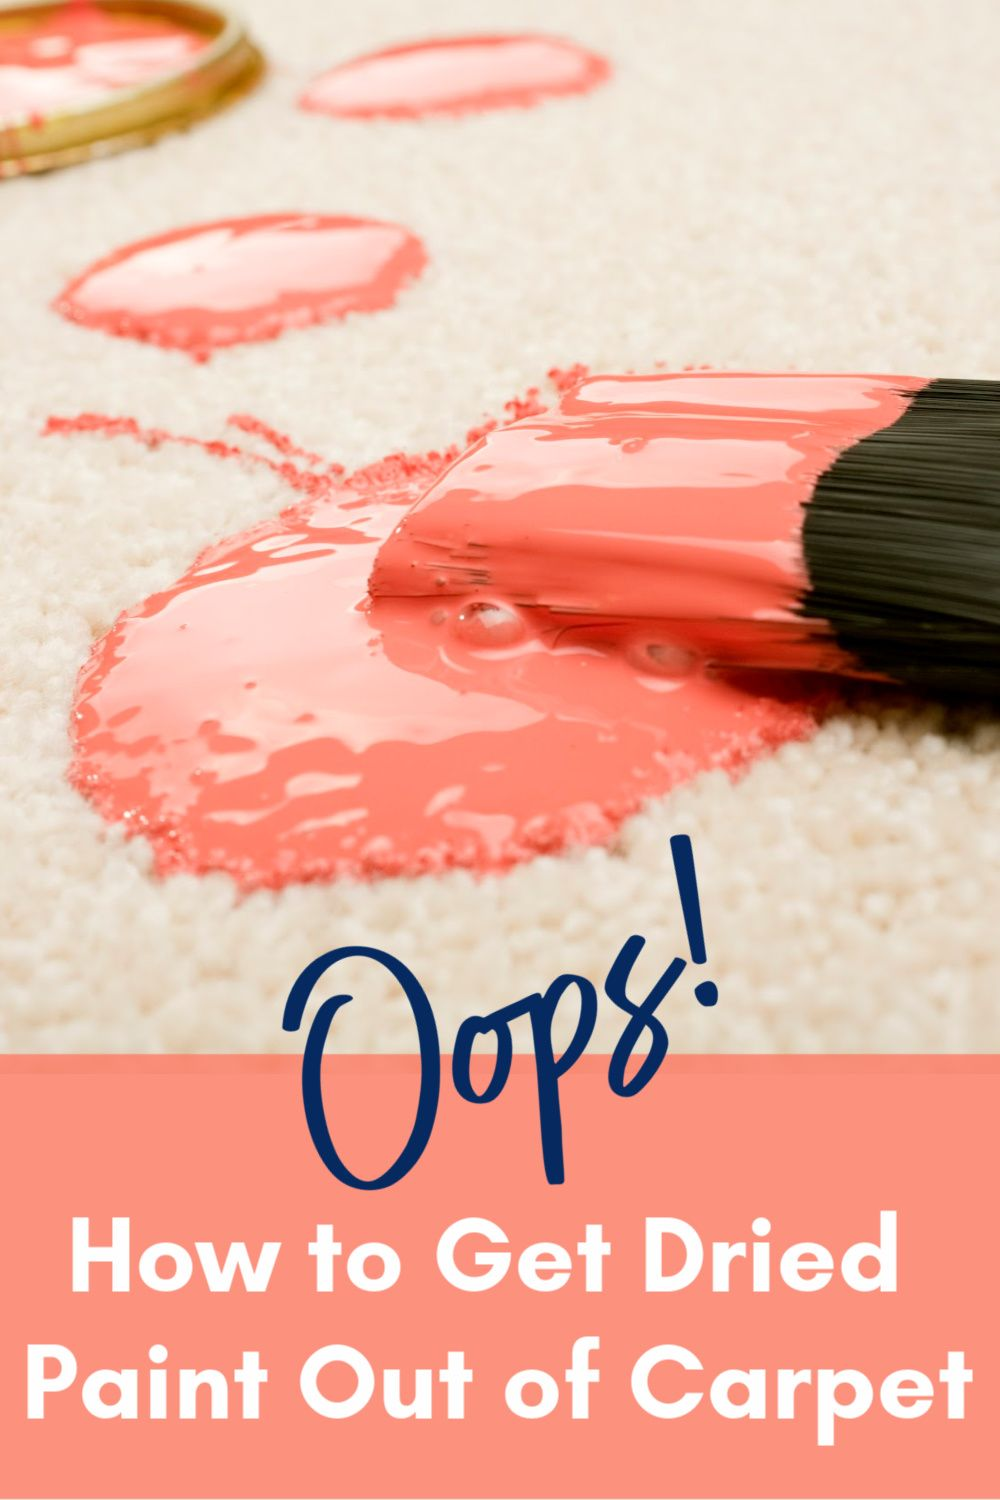 How To Get Dried Paint Out Of Carpet And Other Crazy Stains Painting Carpet How To Clean Carpet Painting